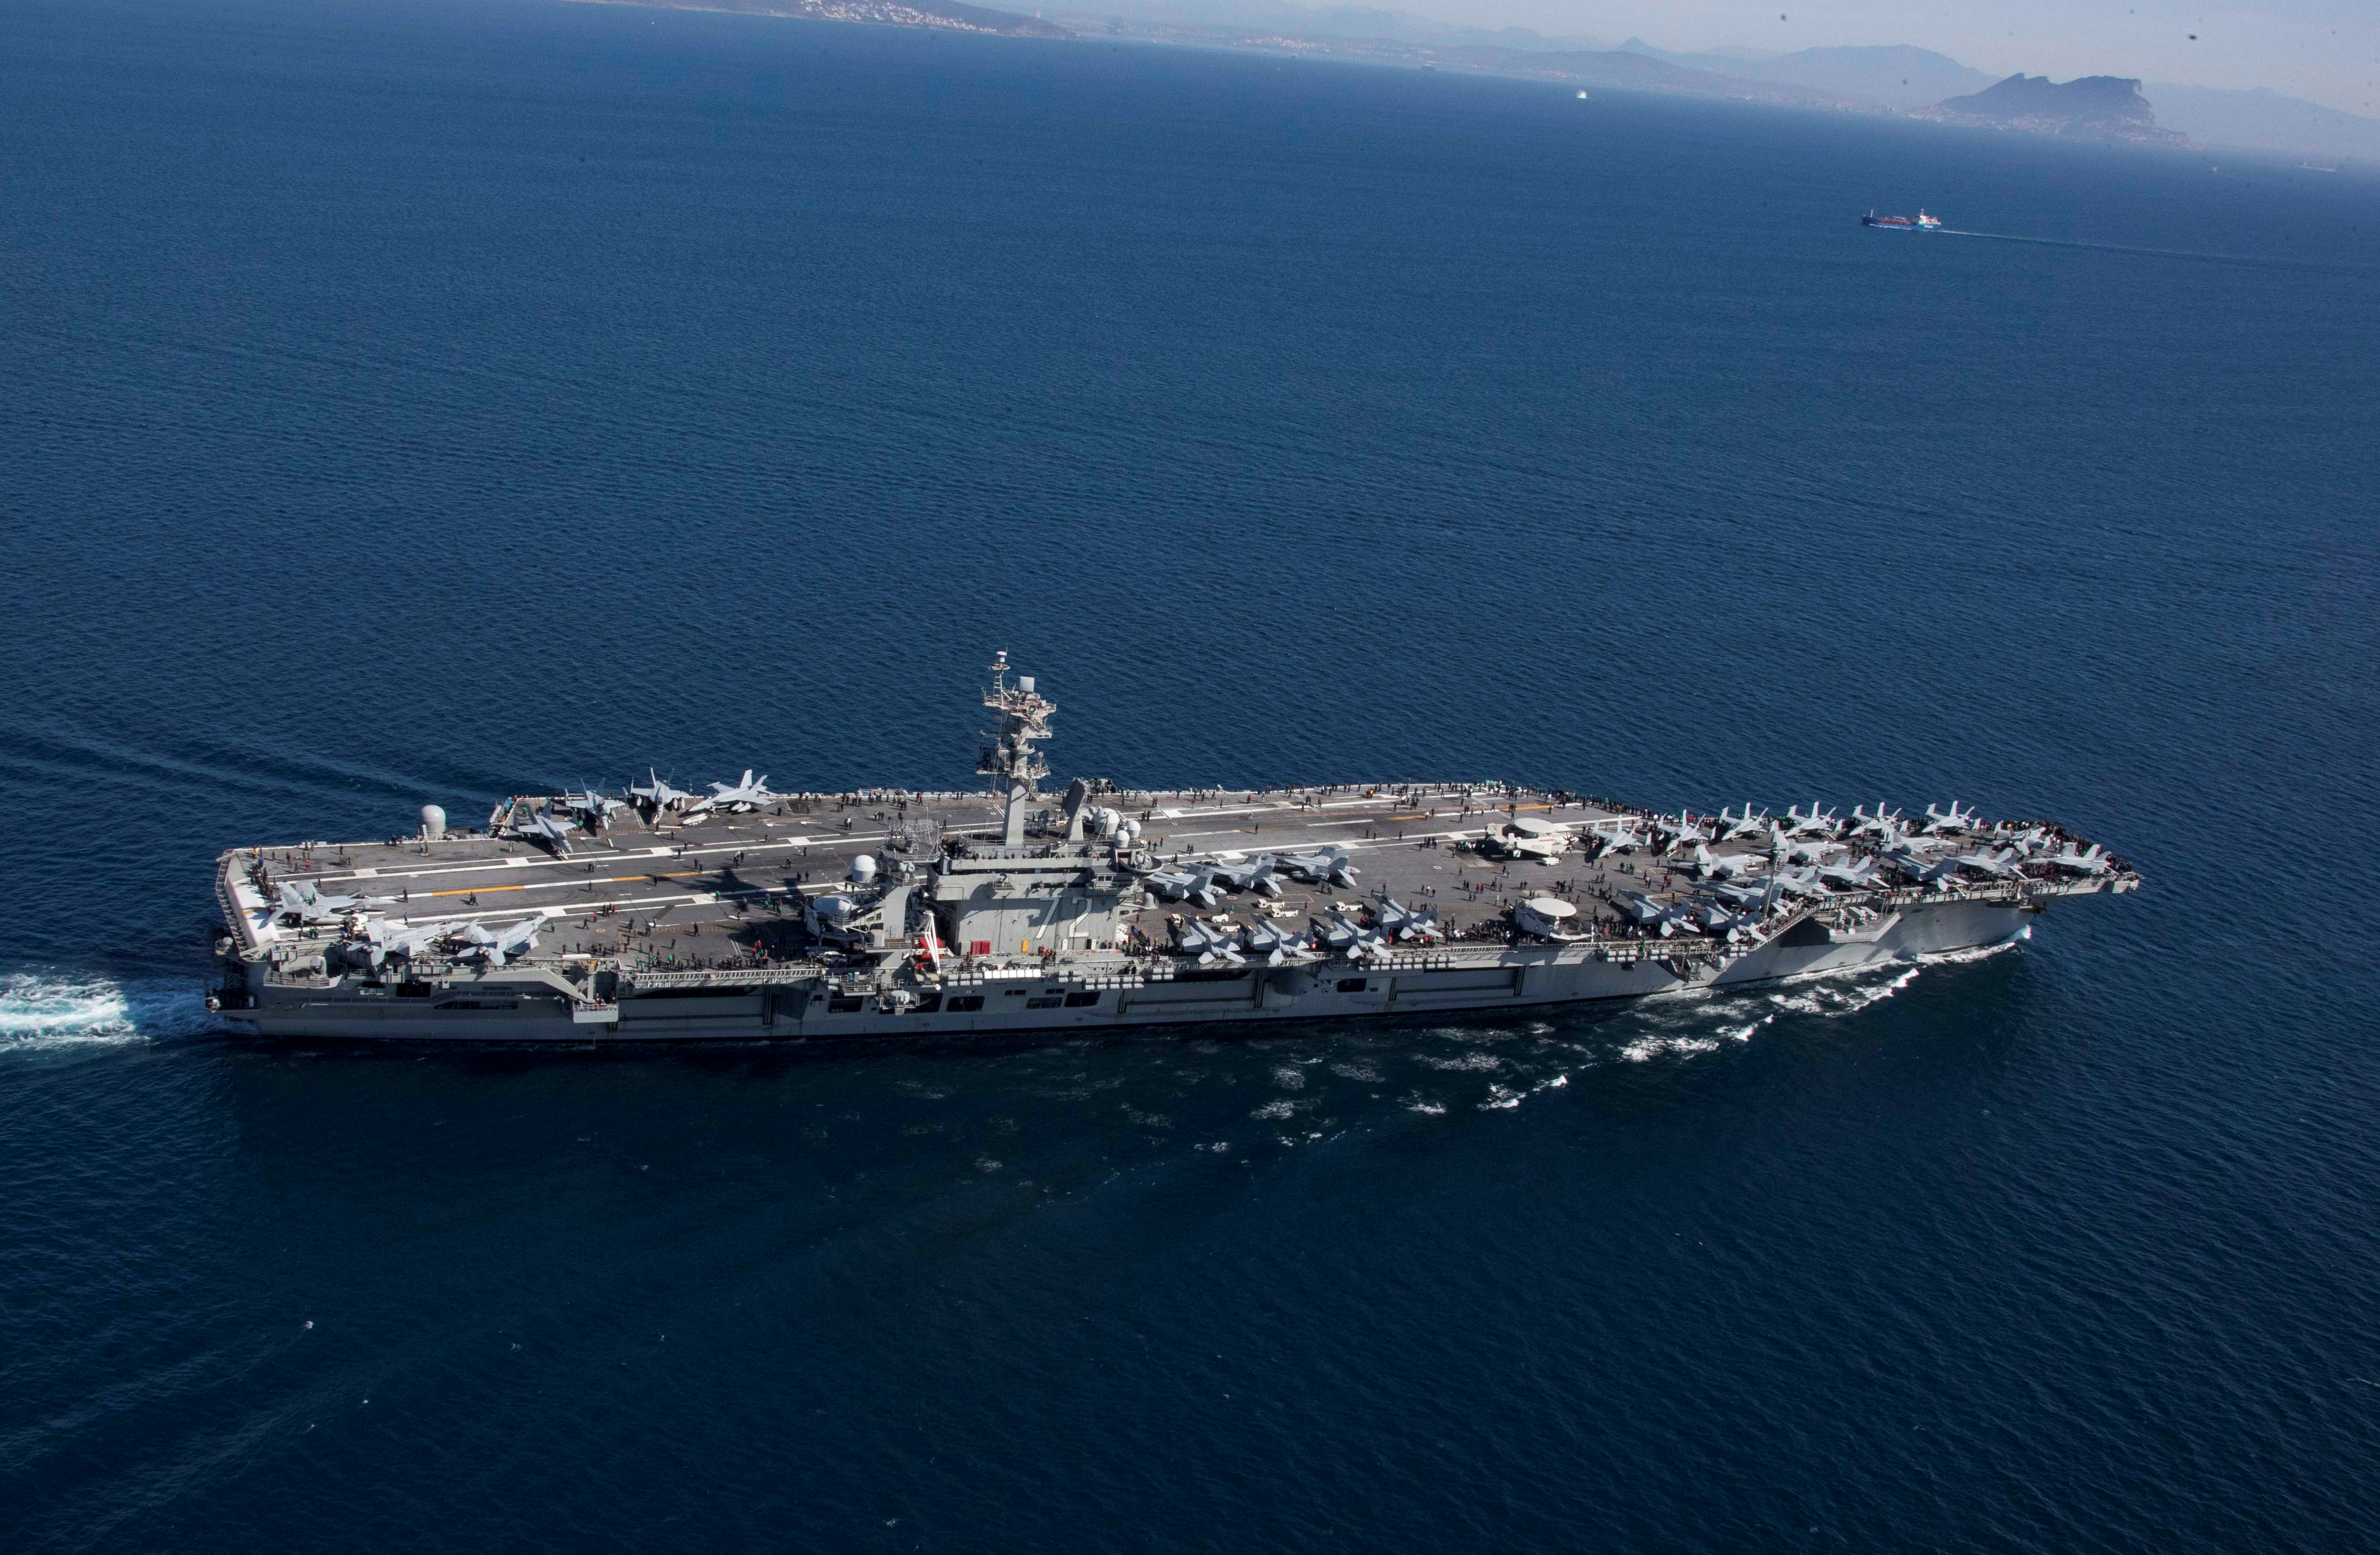 The Nimitz-class aircraft carrier USS Abraham Lincoln transits the Strait of Gibraltar, entering the Mediterranean Sea as it continues operations in the 6th Fleet area of responsibility, April 13, 2019.